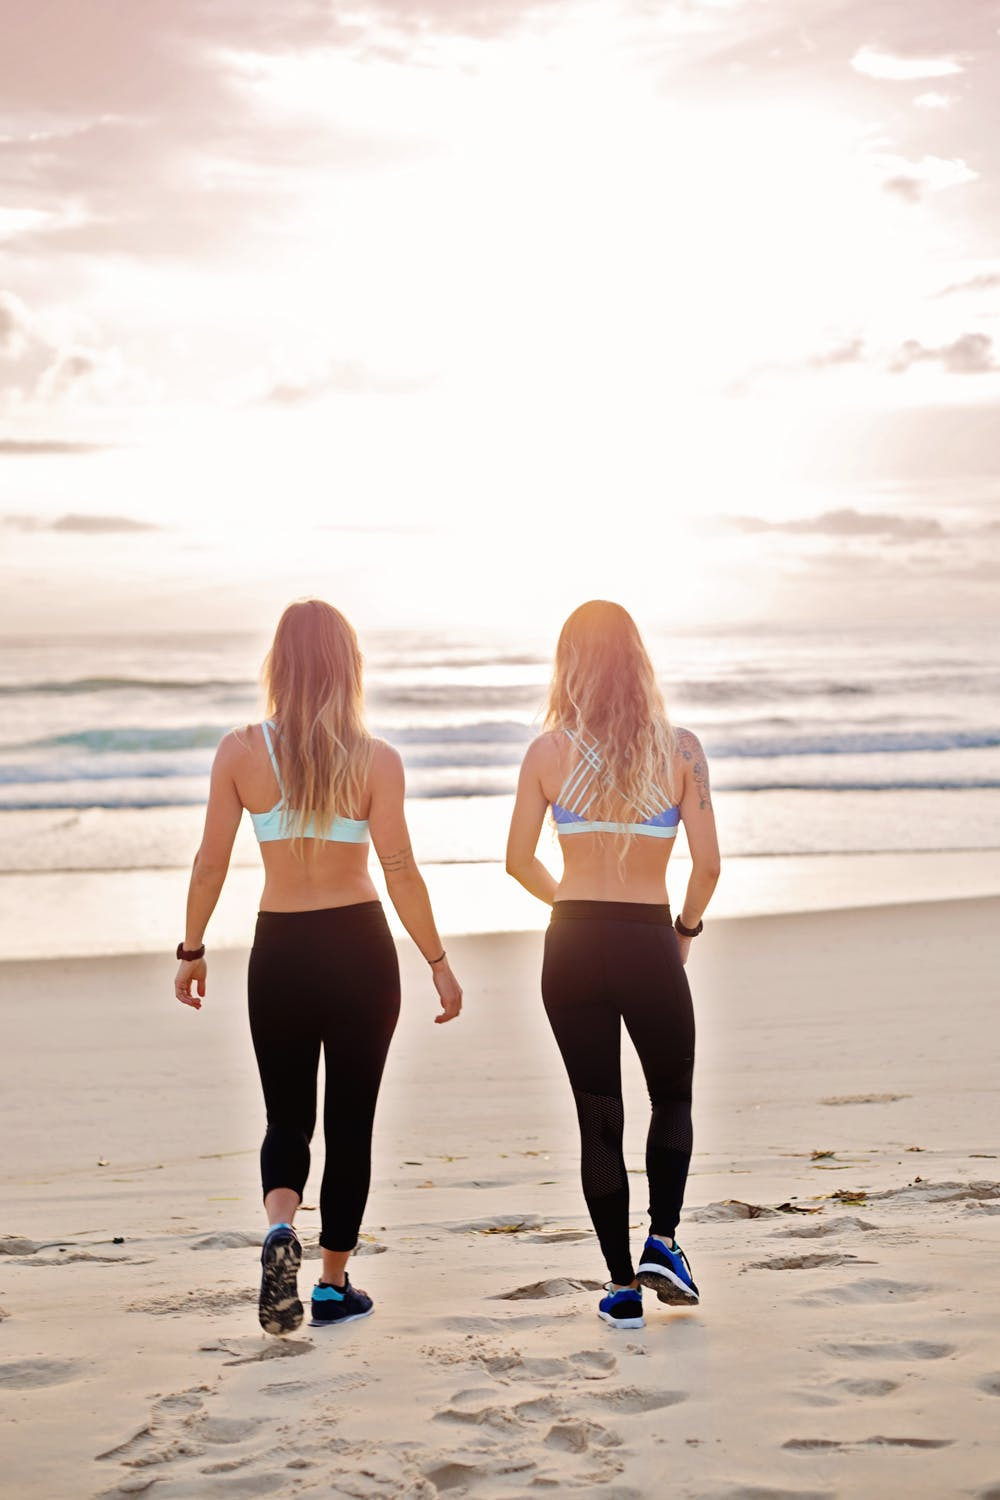 How to Be Fit By Walking Miles with Your Friend